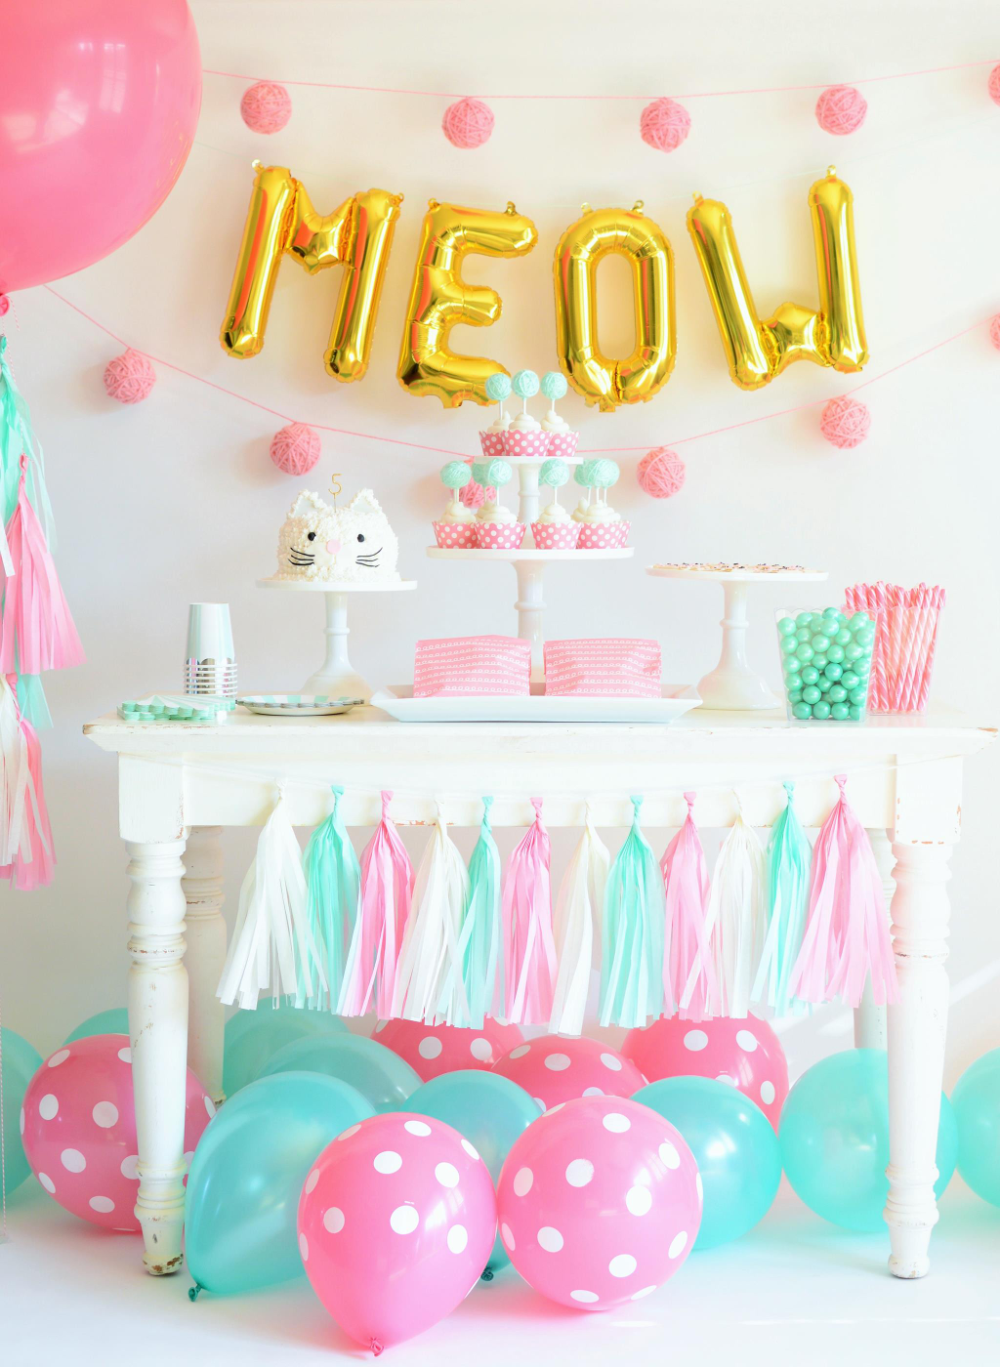 How to Throw the Purrfect Kitten Party Kitten party